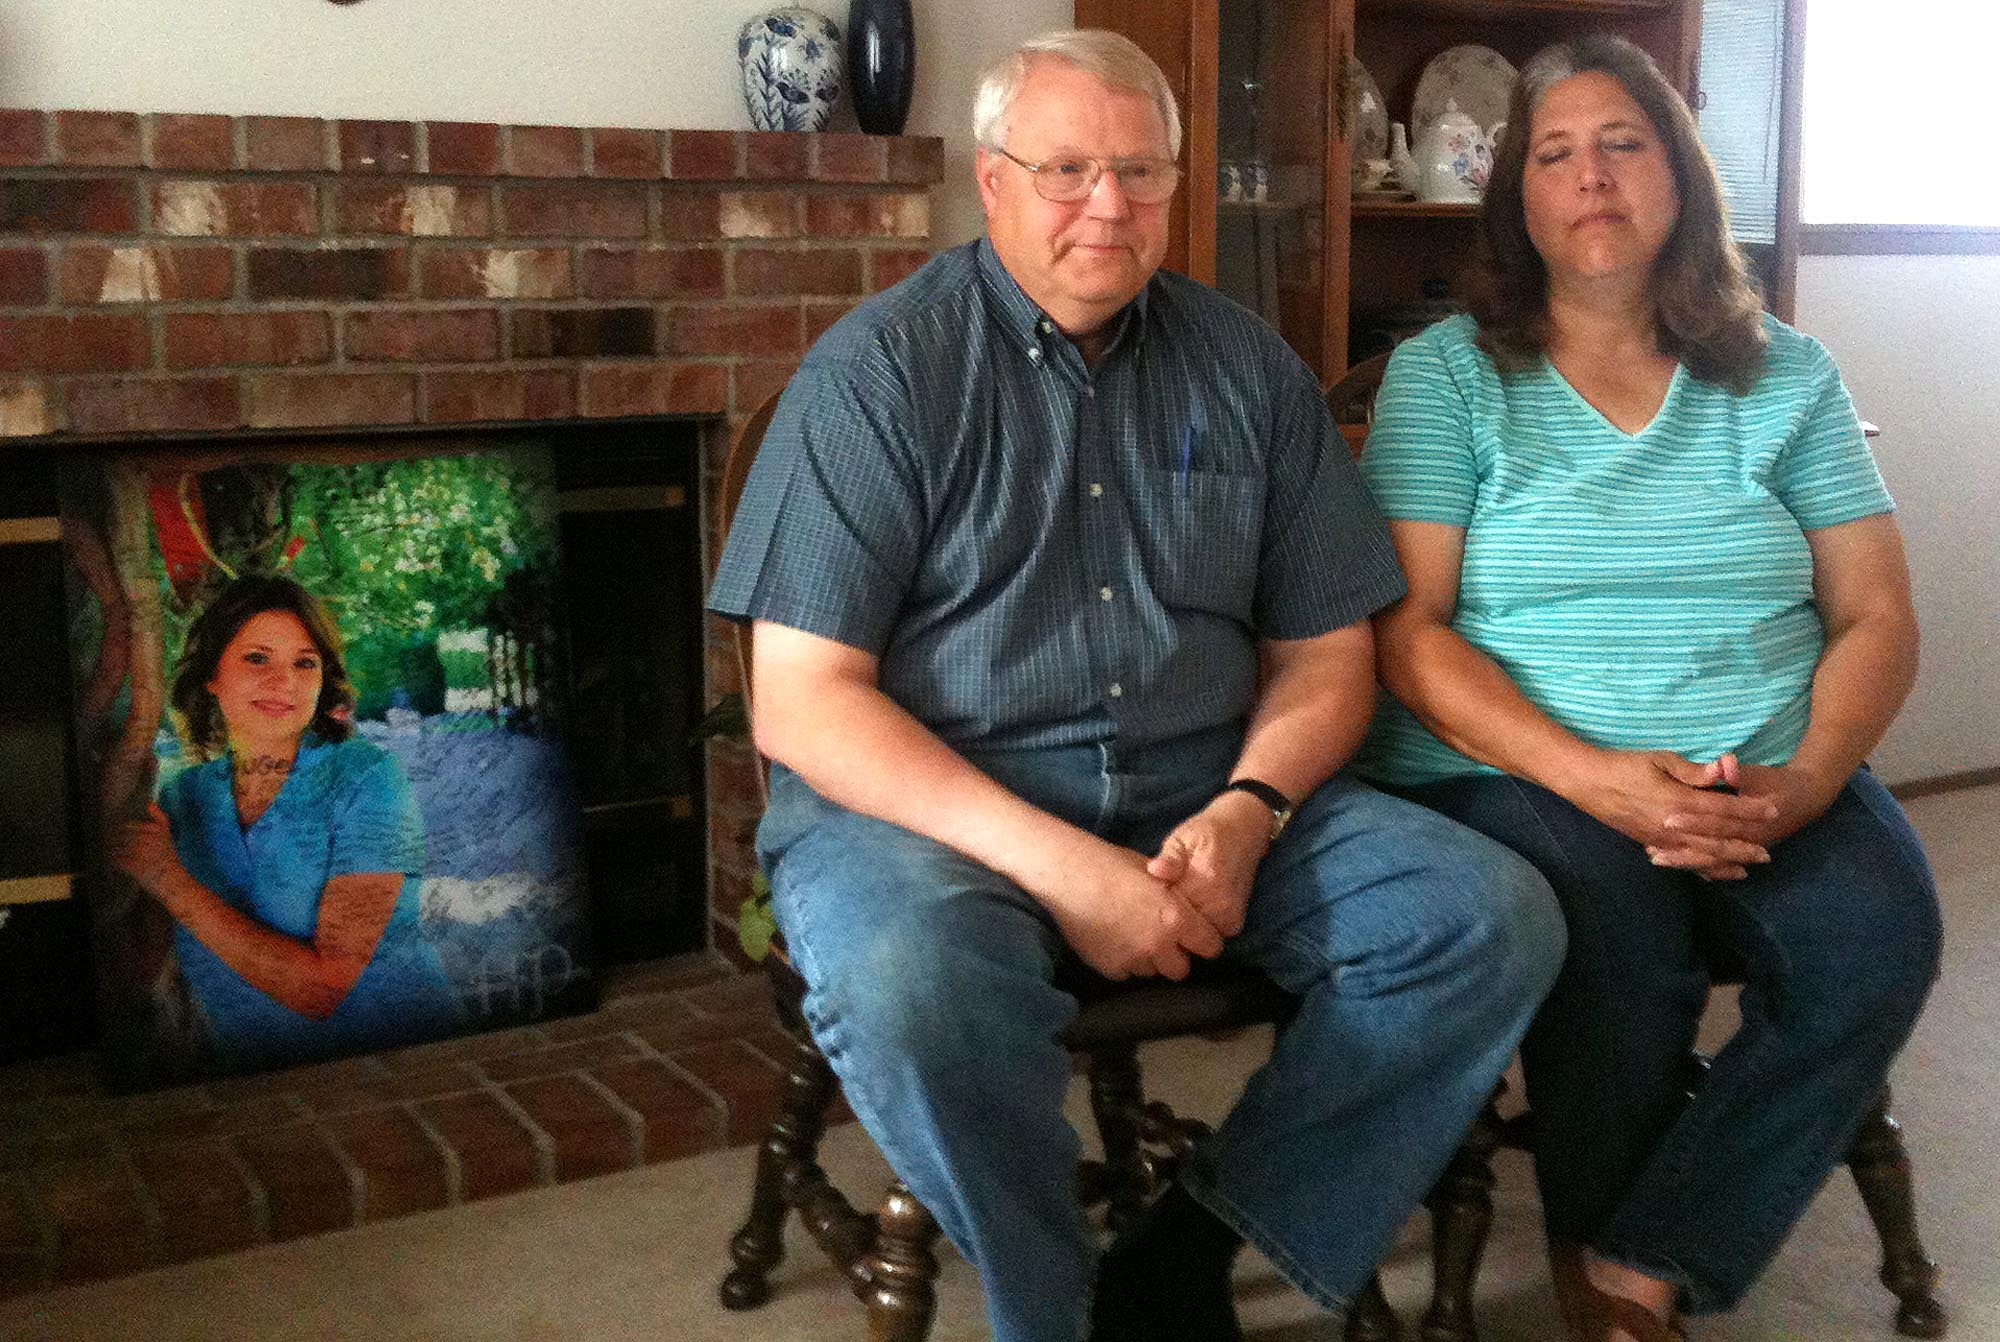 Chuck and Judy Cox talk about their daughter, Susan Powell, in Washington in this 2011 file photo.